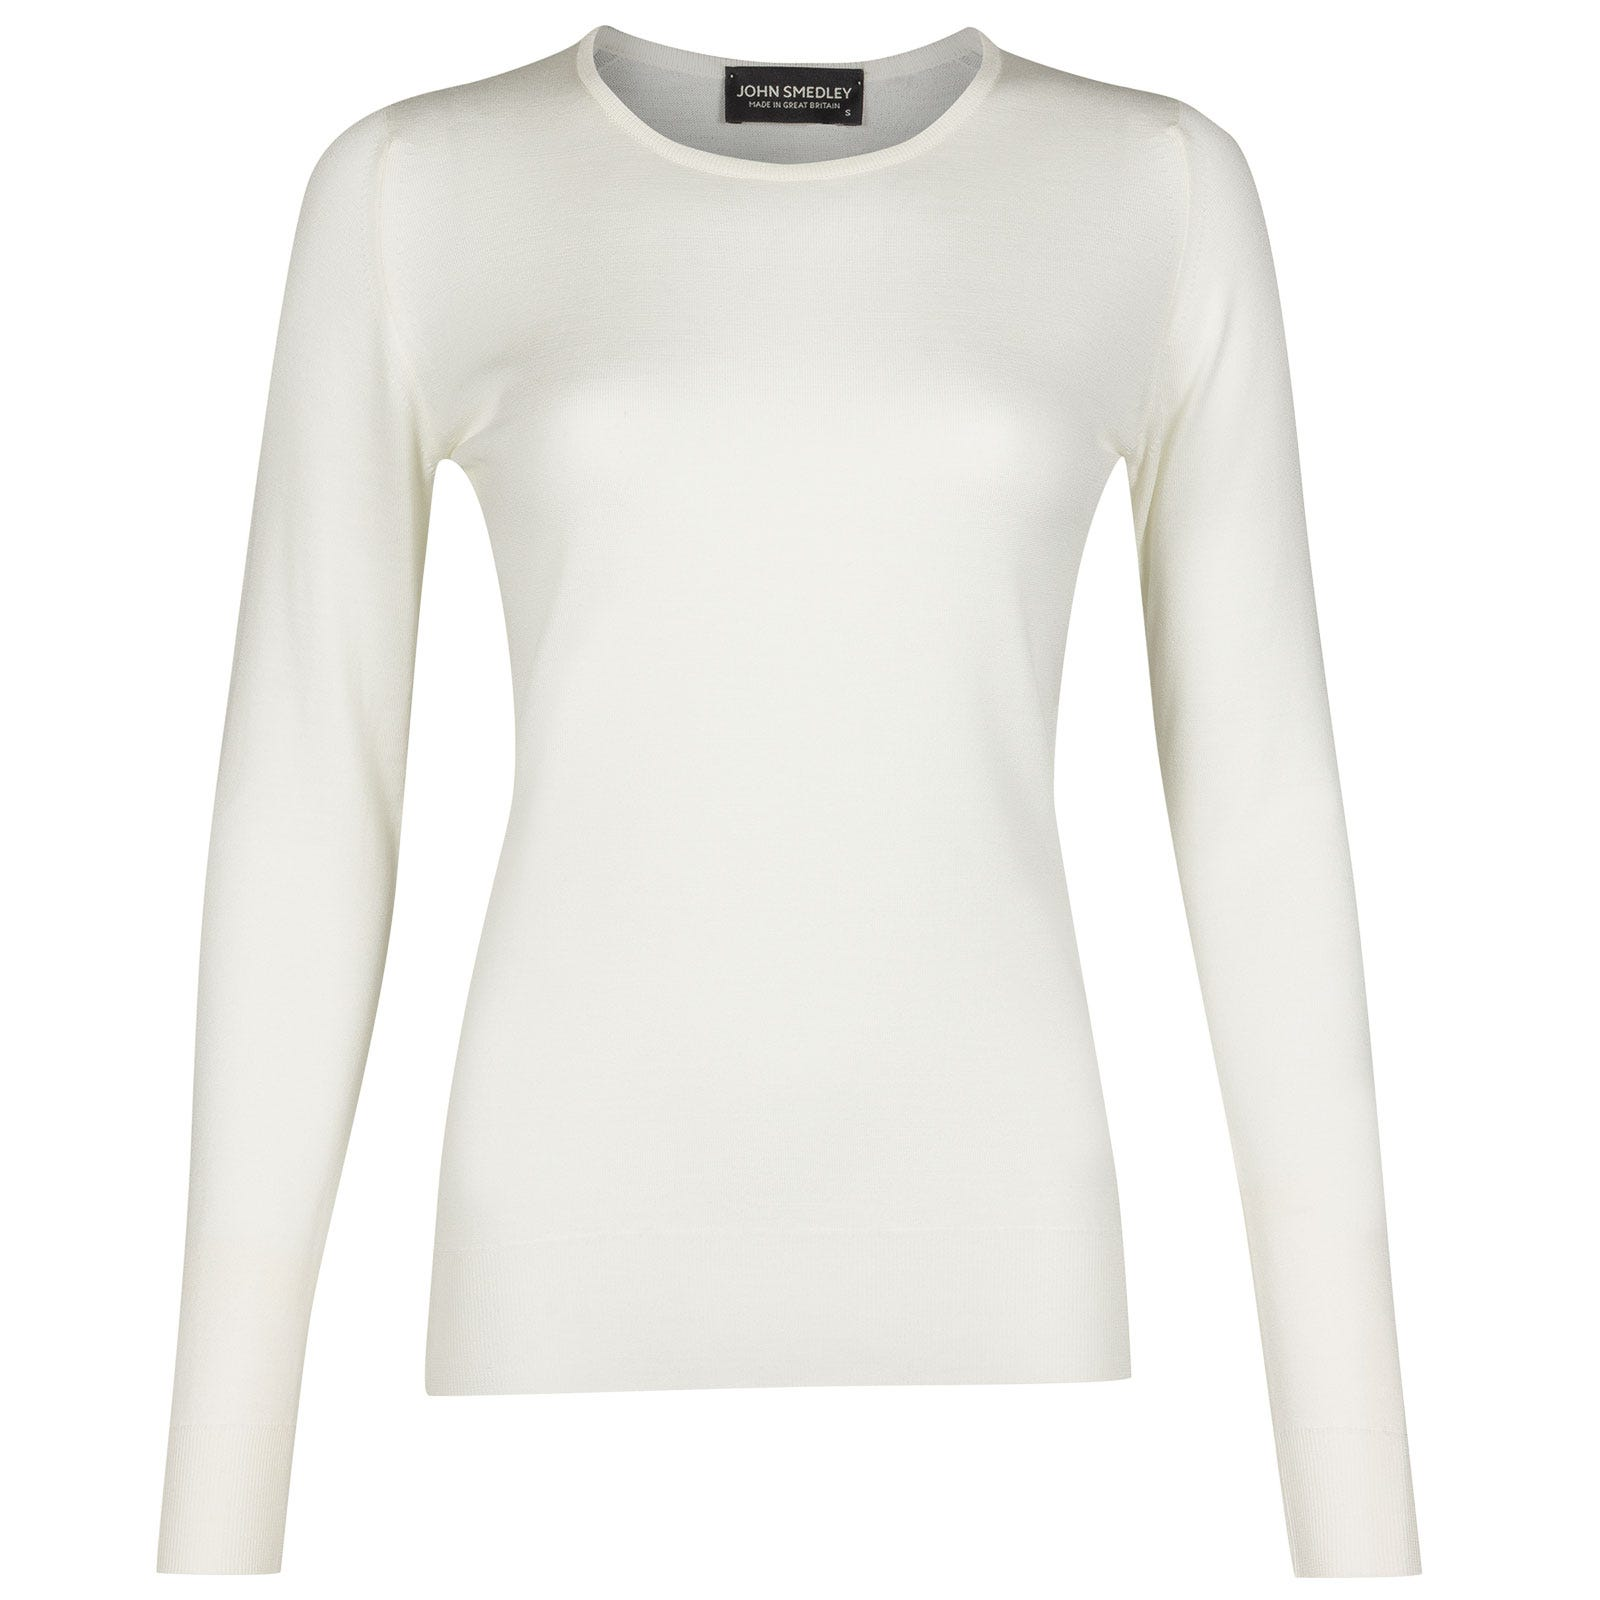 John Smedley Geranium Merino Wool Sweater in Snow White-XL